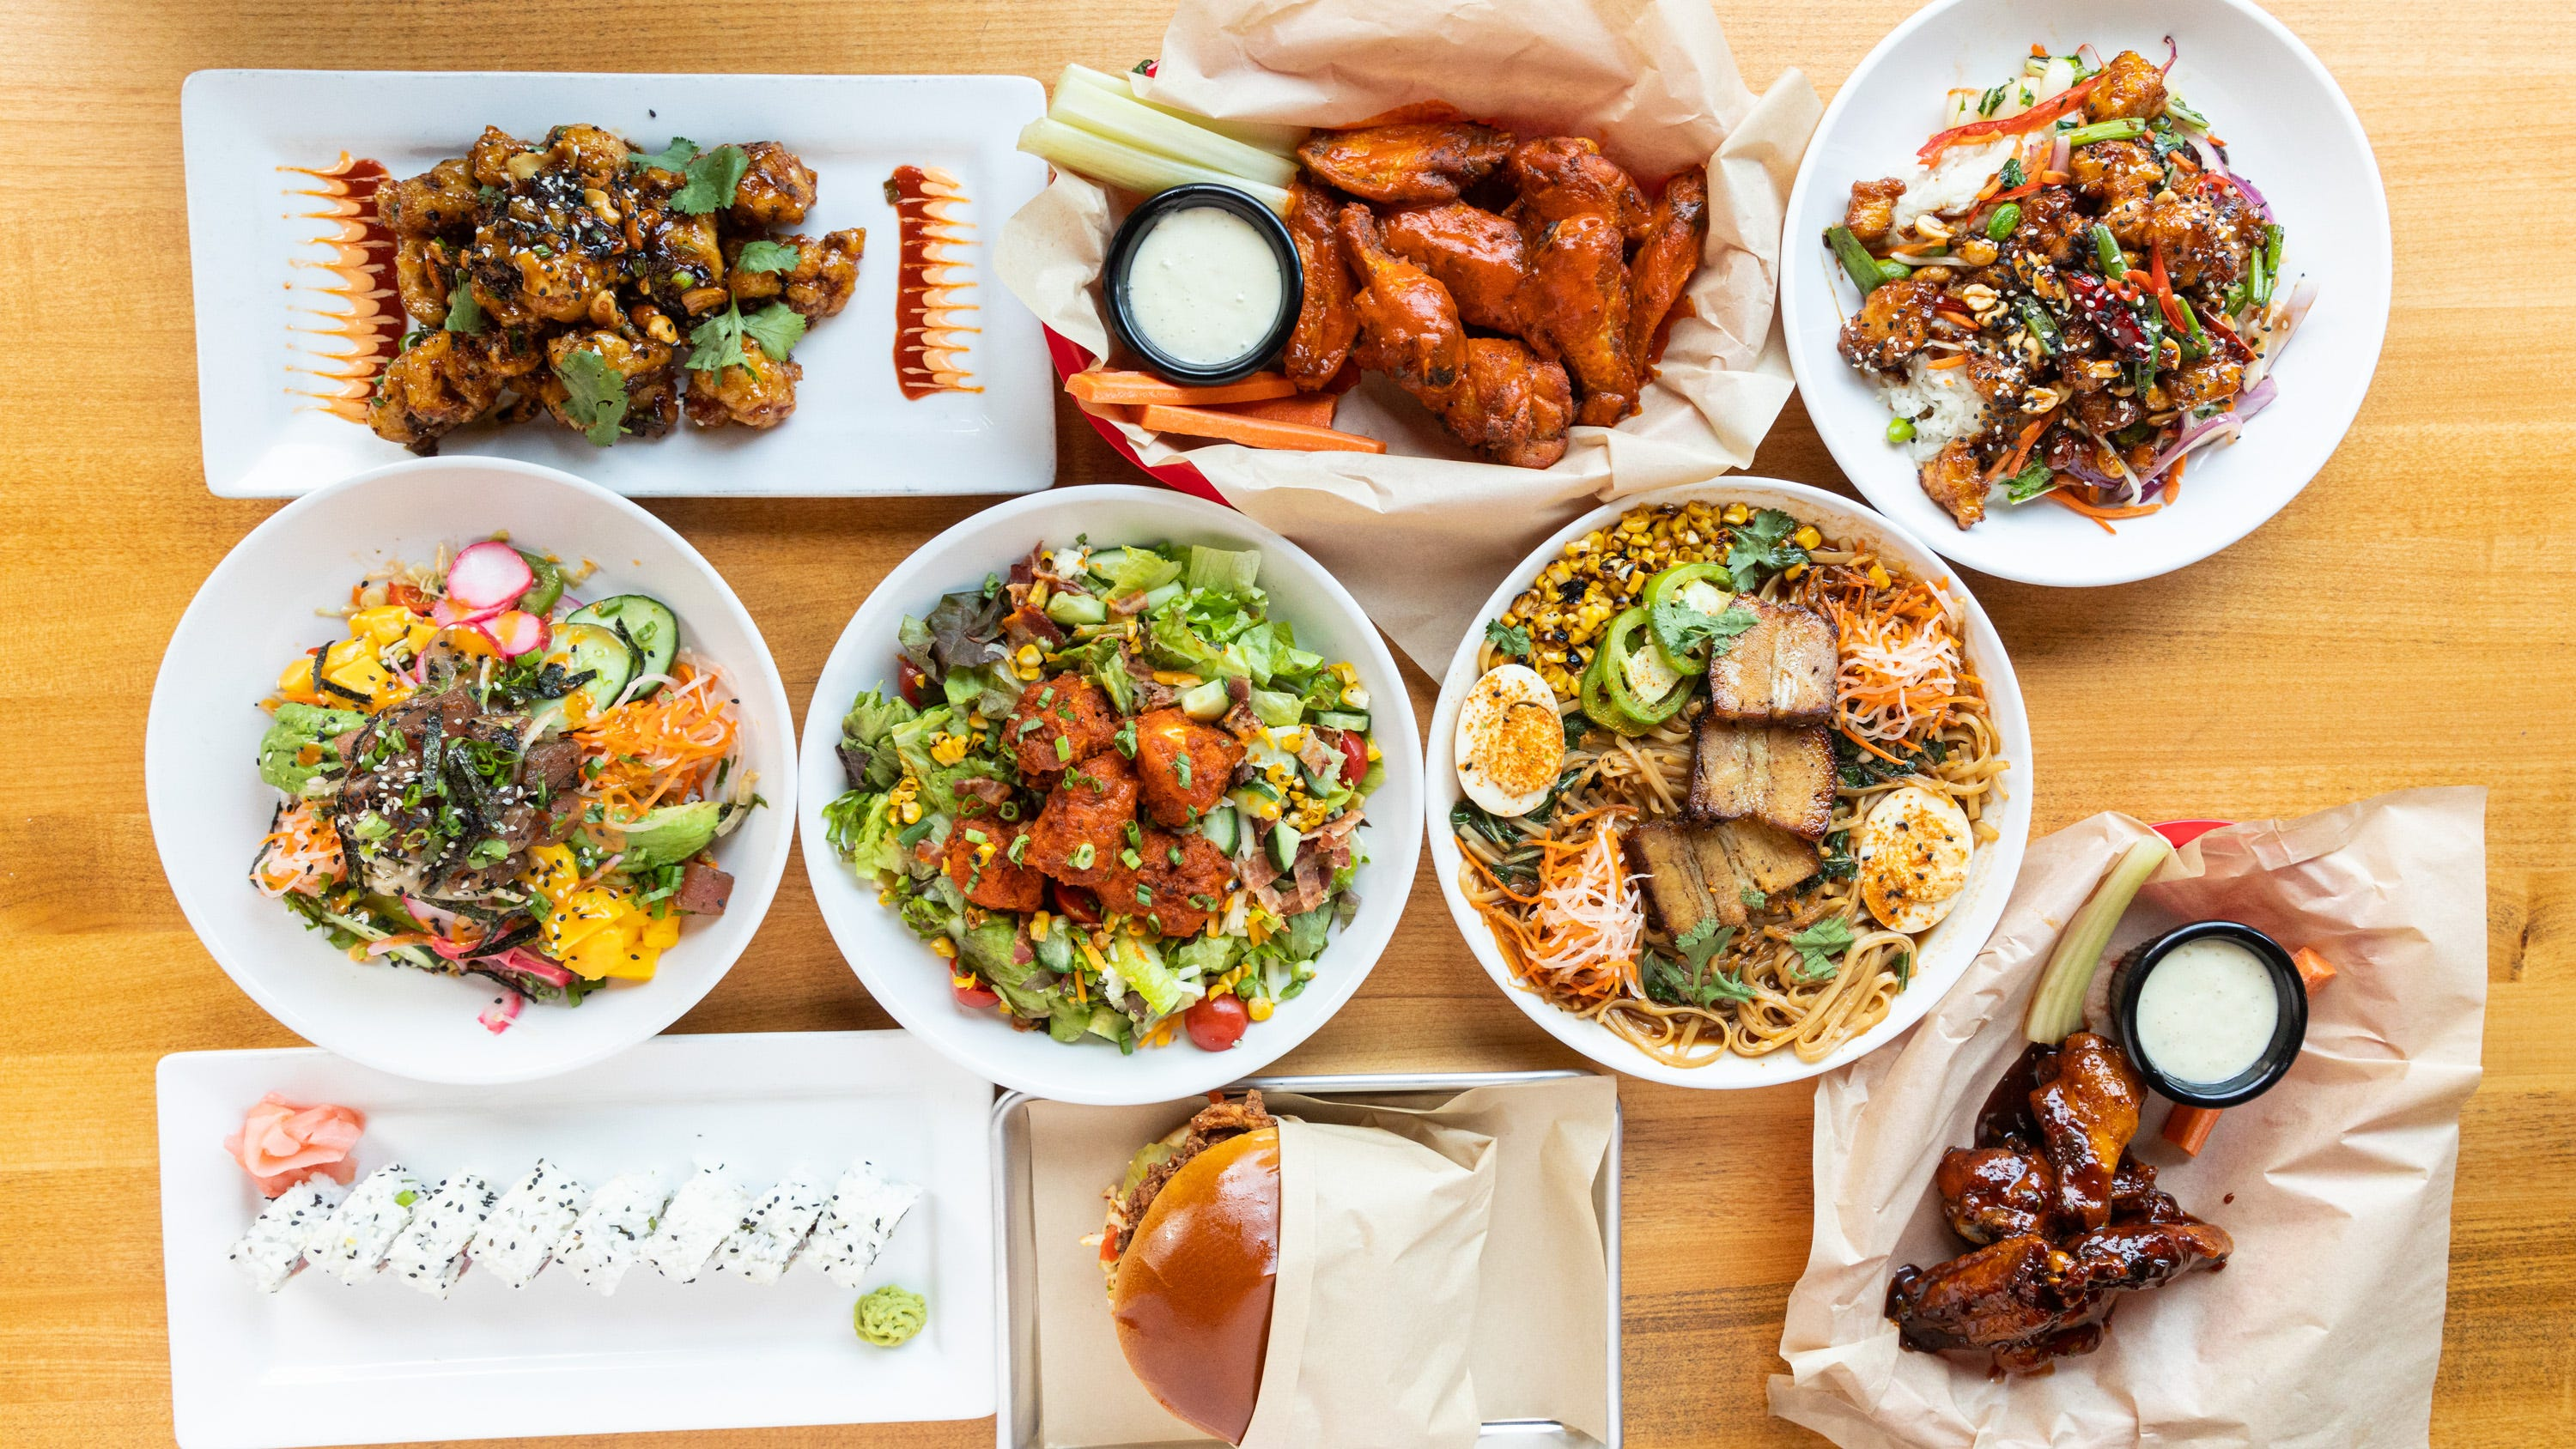 25 New Restaurants And Food Trucks Open For Takeout In Metro Phoenix